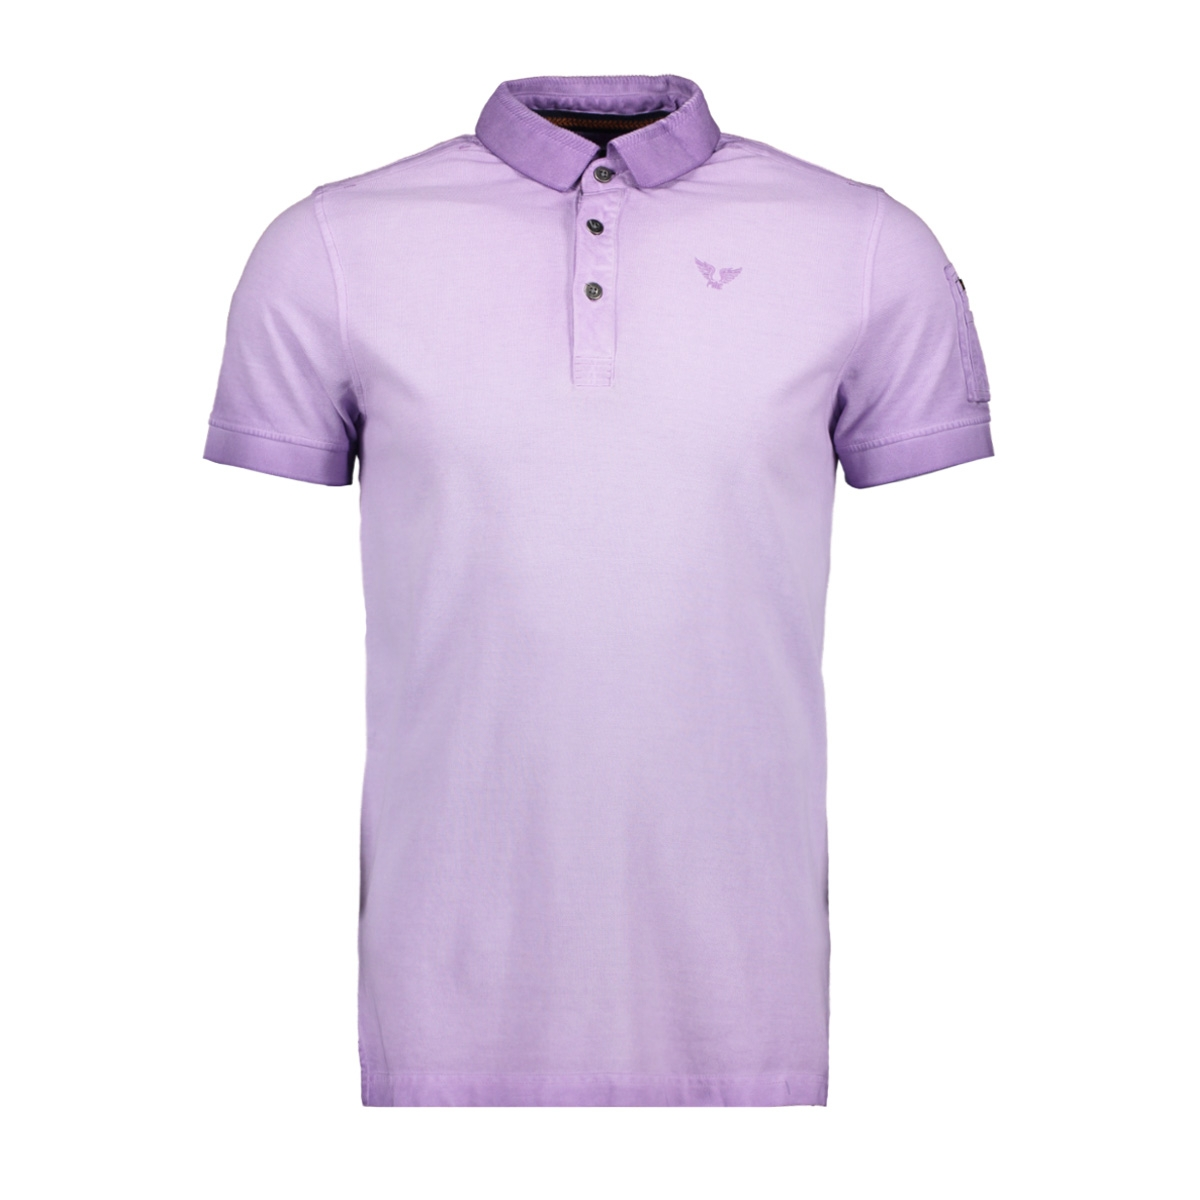 short sleeve polo ppss193851 pme legend polo 4243